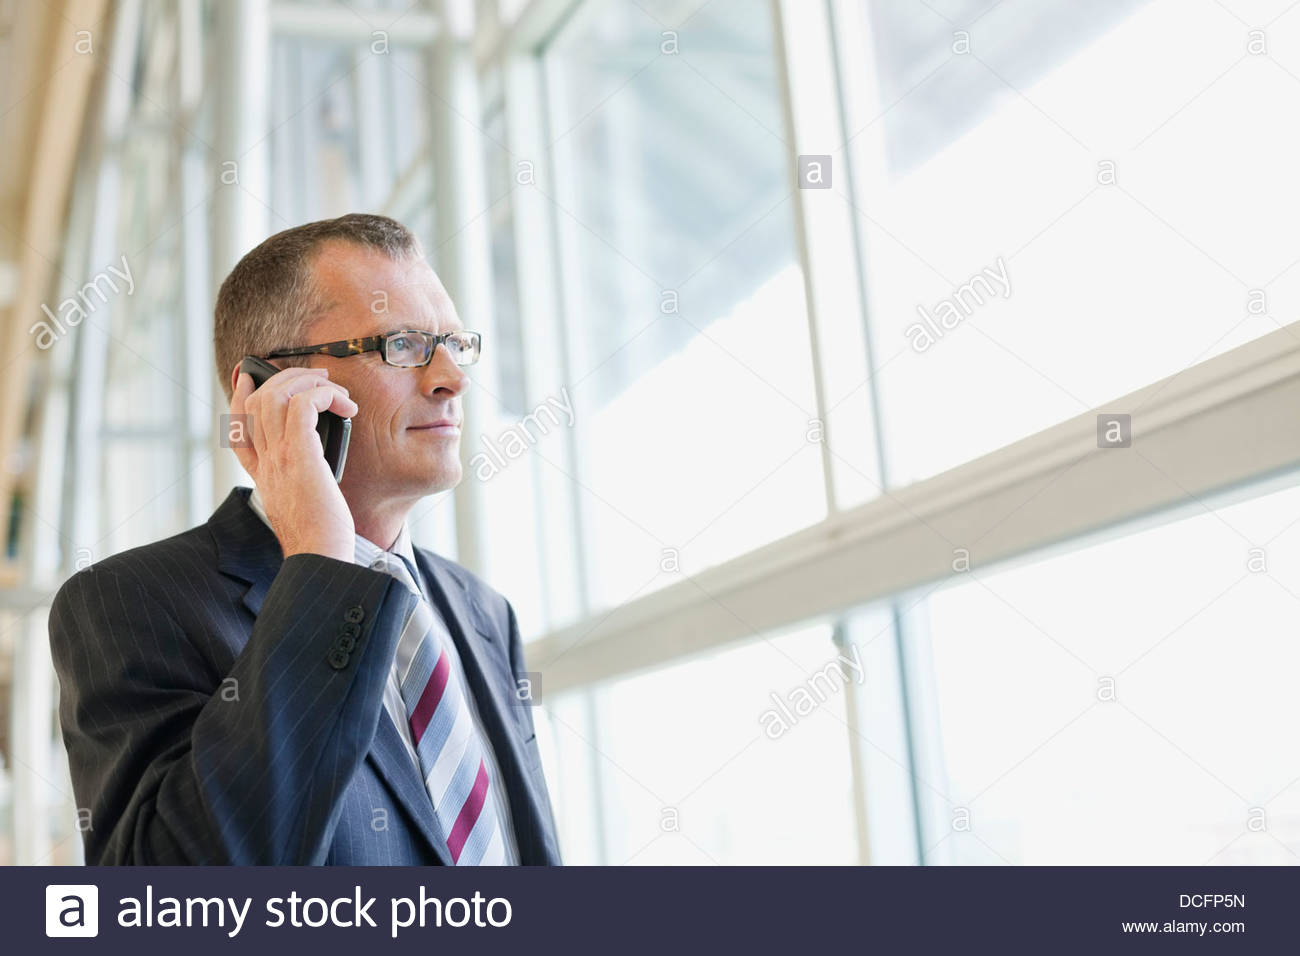 Businessman talking on mobile phone by window - Stock Image